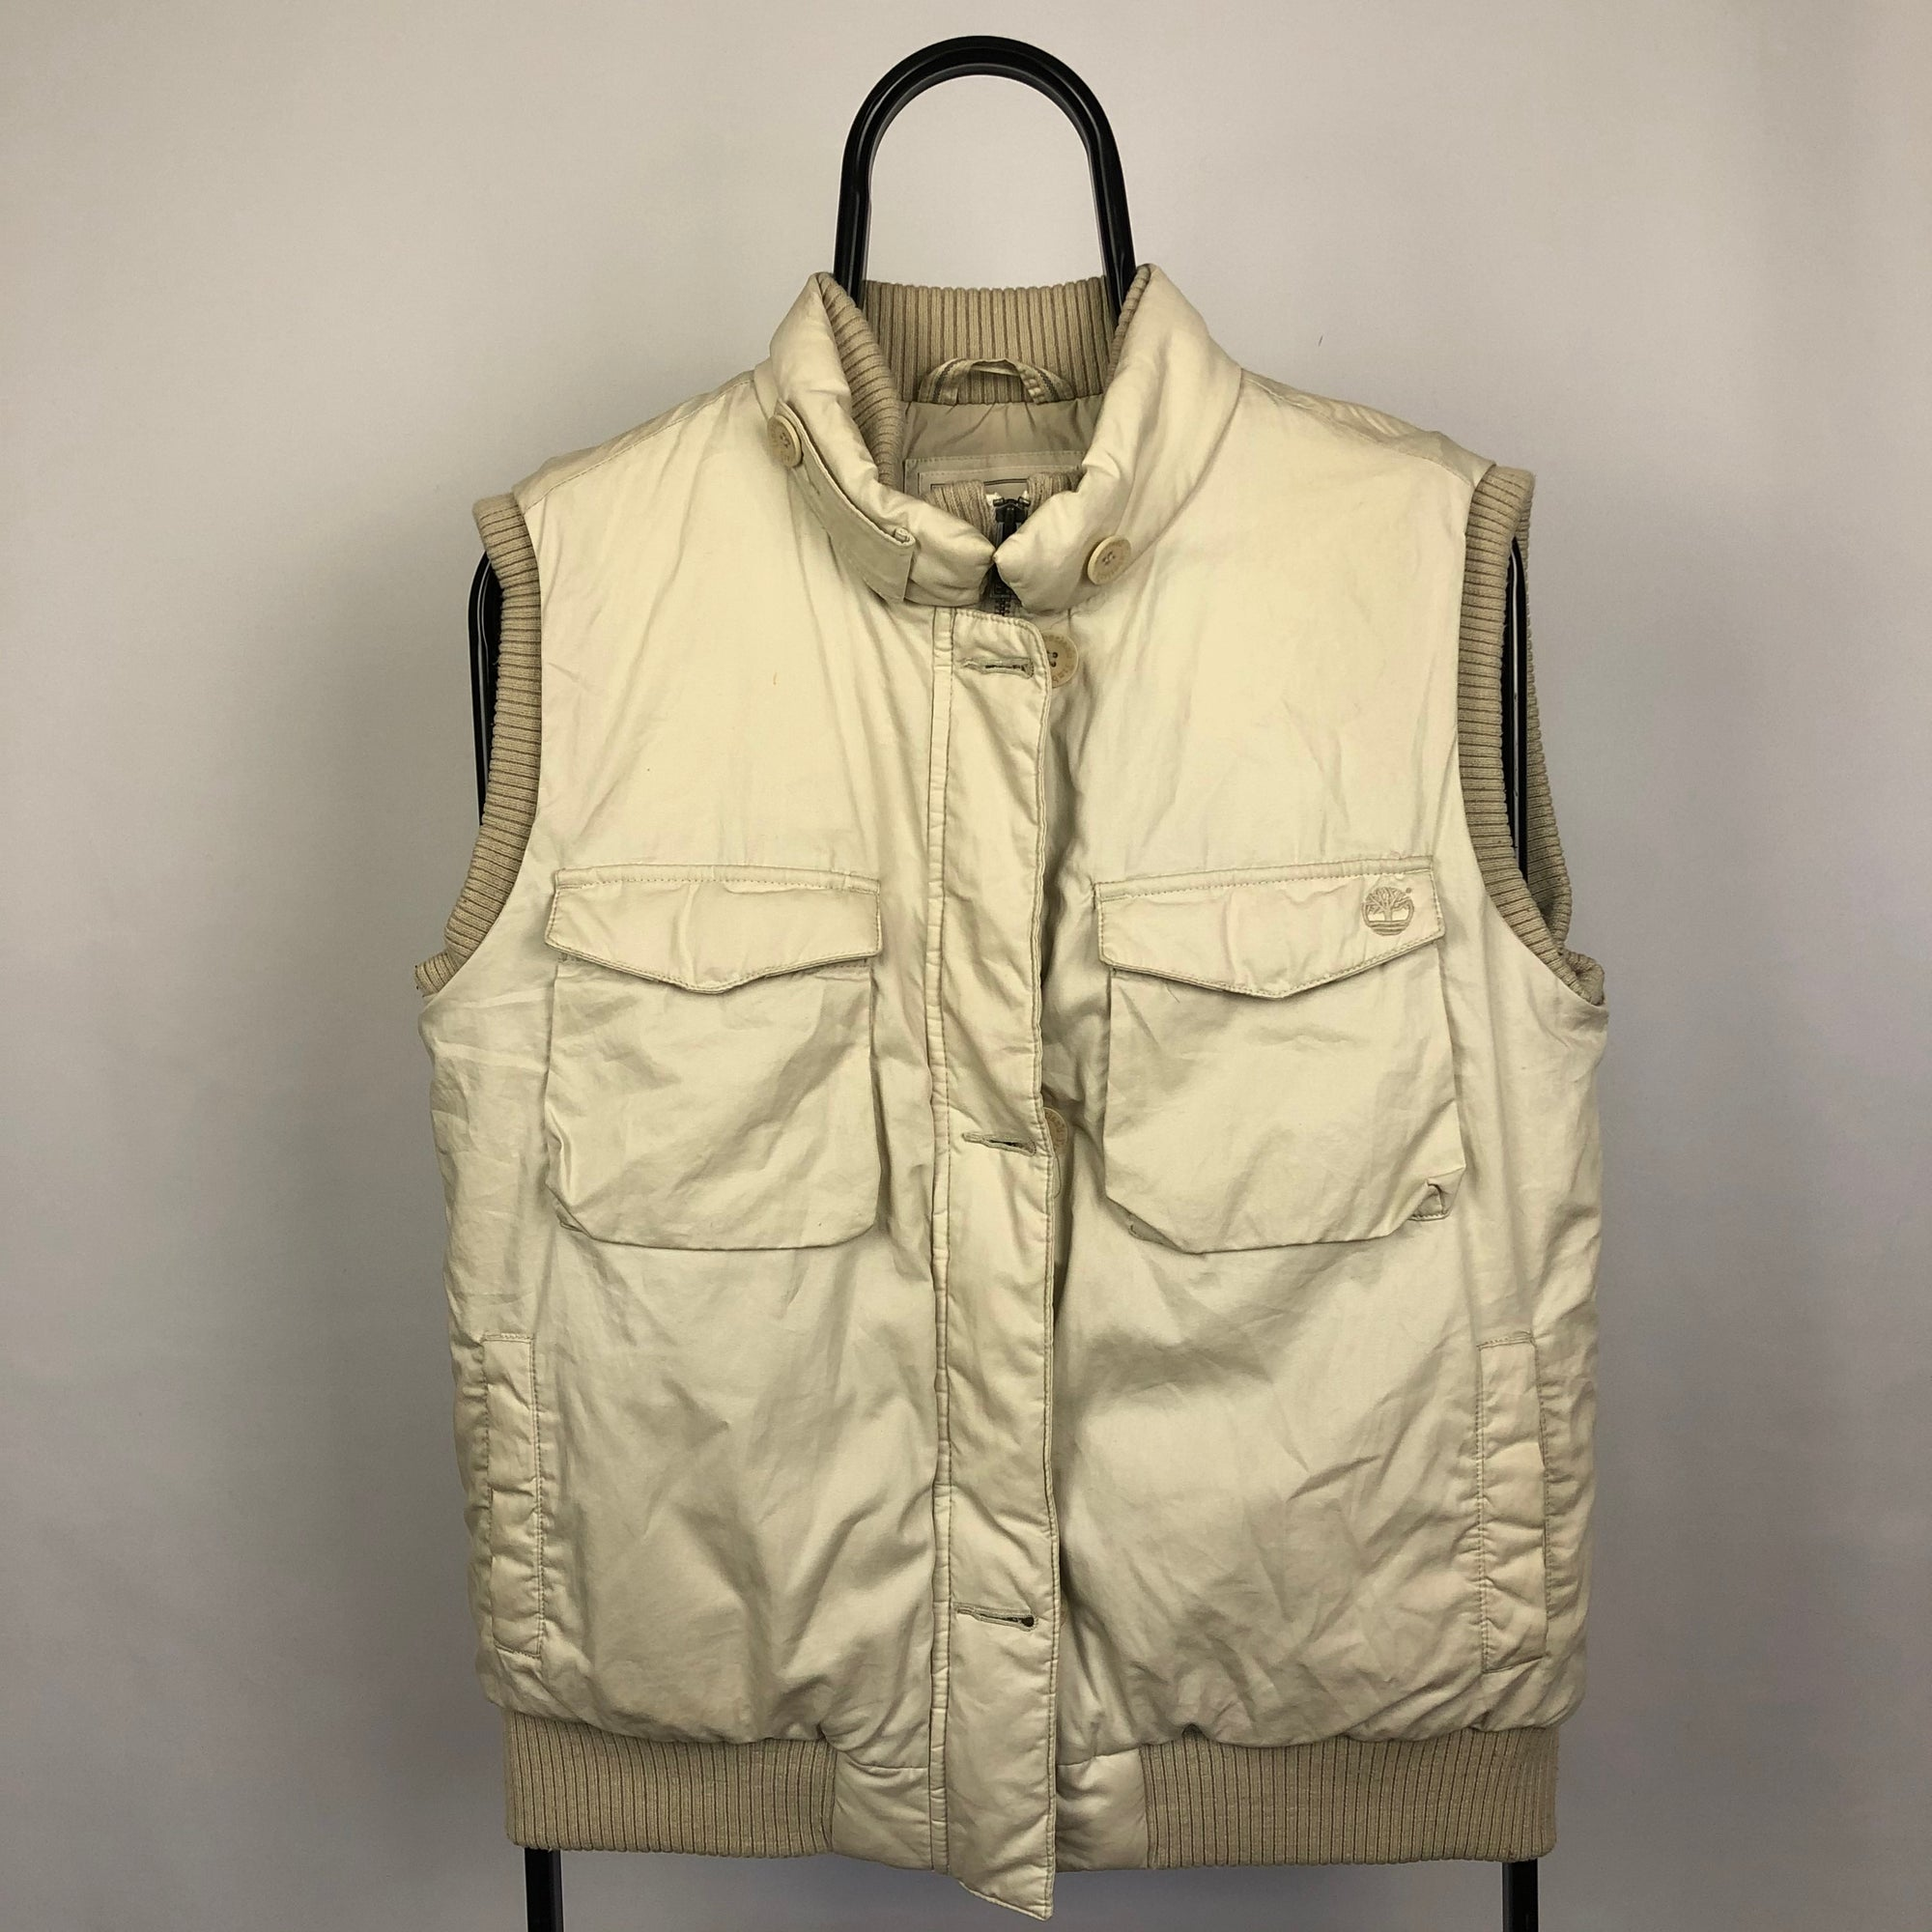 Timberland Beige Gilet - Men's Small/Women's Medium